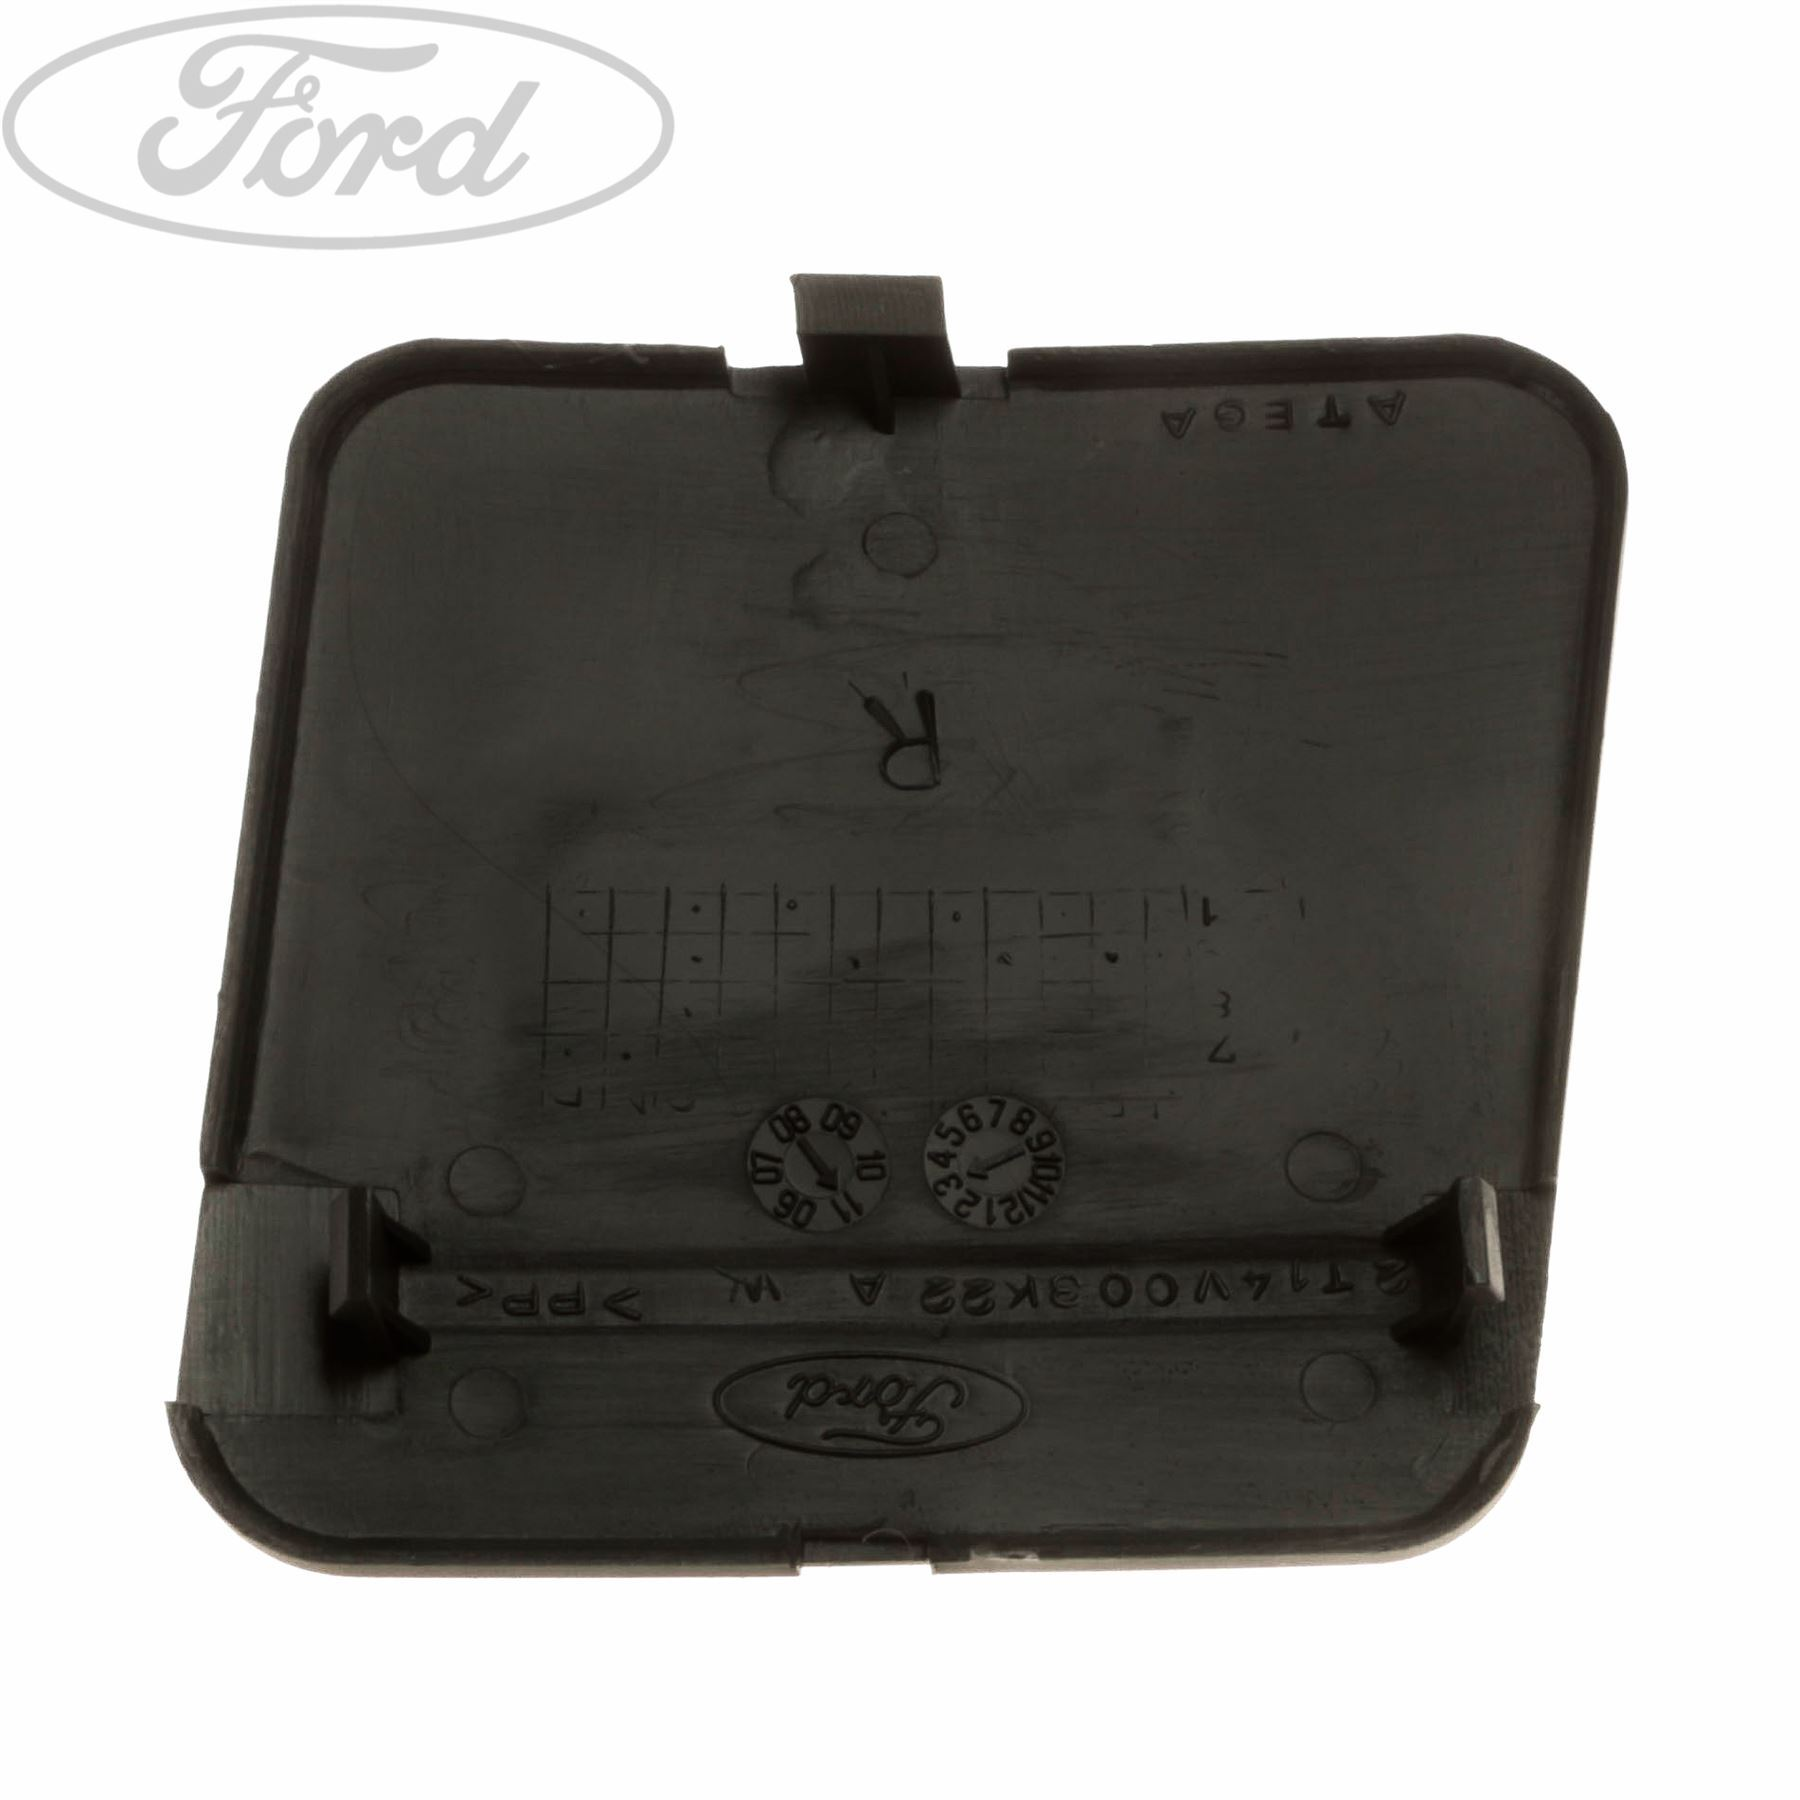 Genuine Ford Front Bumper Towing Hook Cover 4447723